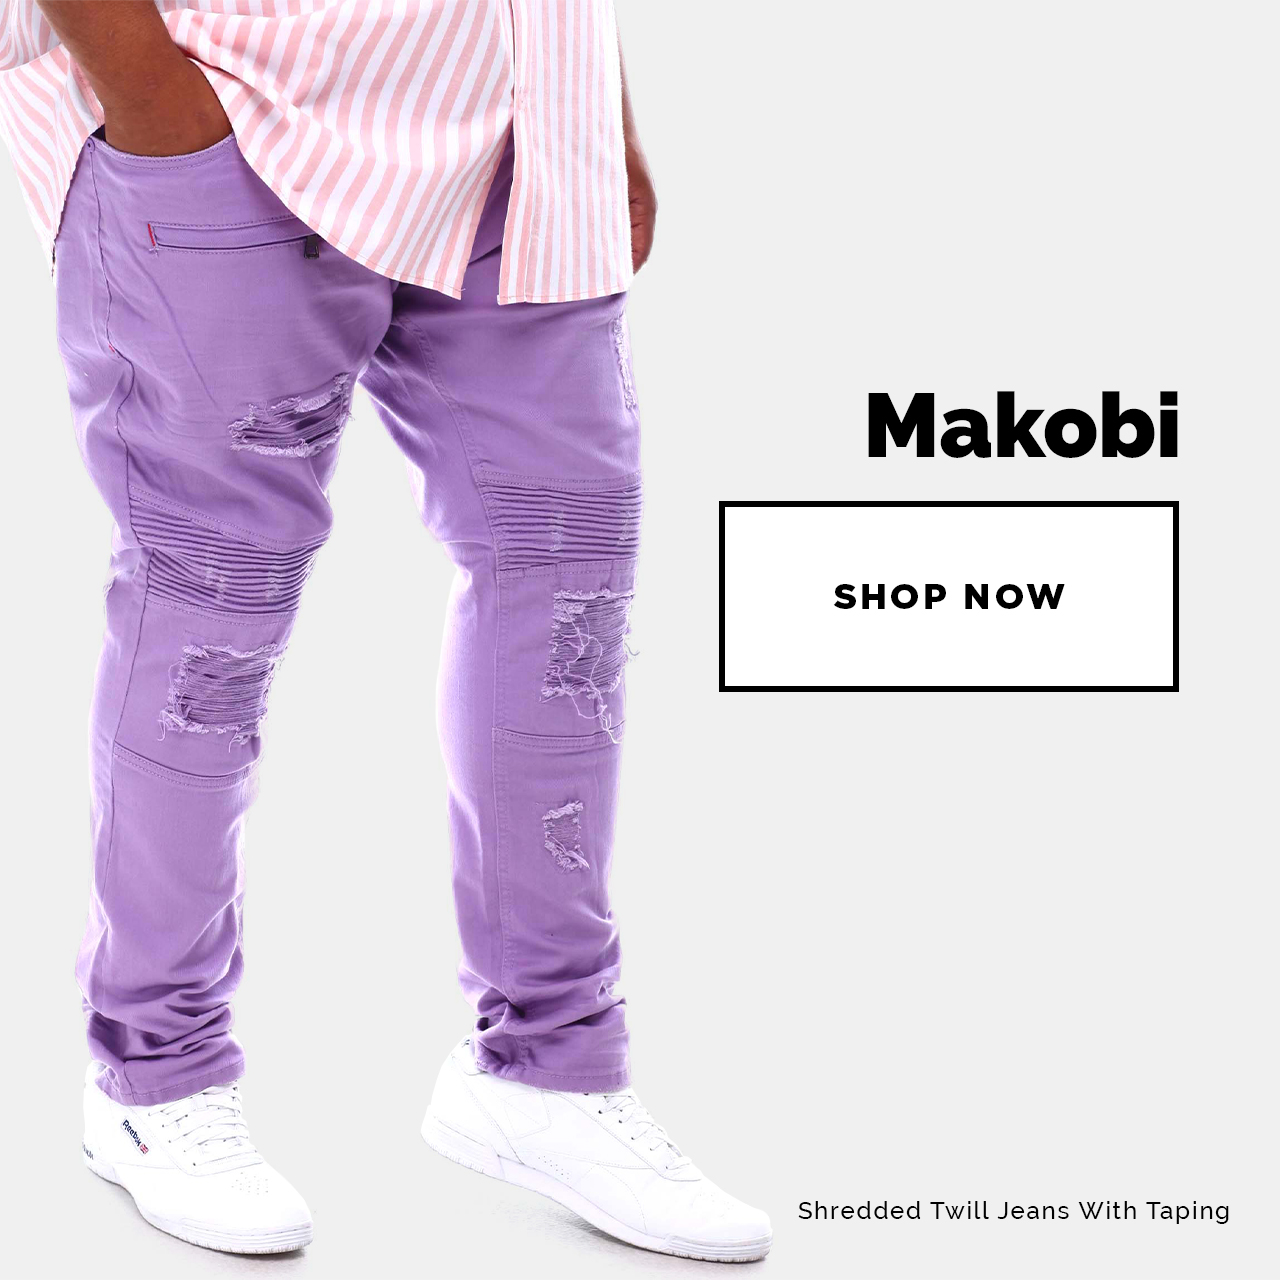 Makobi - Shop Now! Featuring Shredded Twill Jeans With Taping